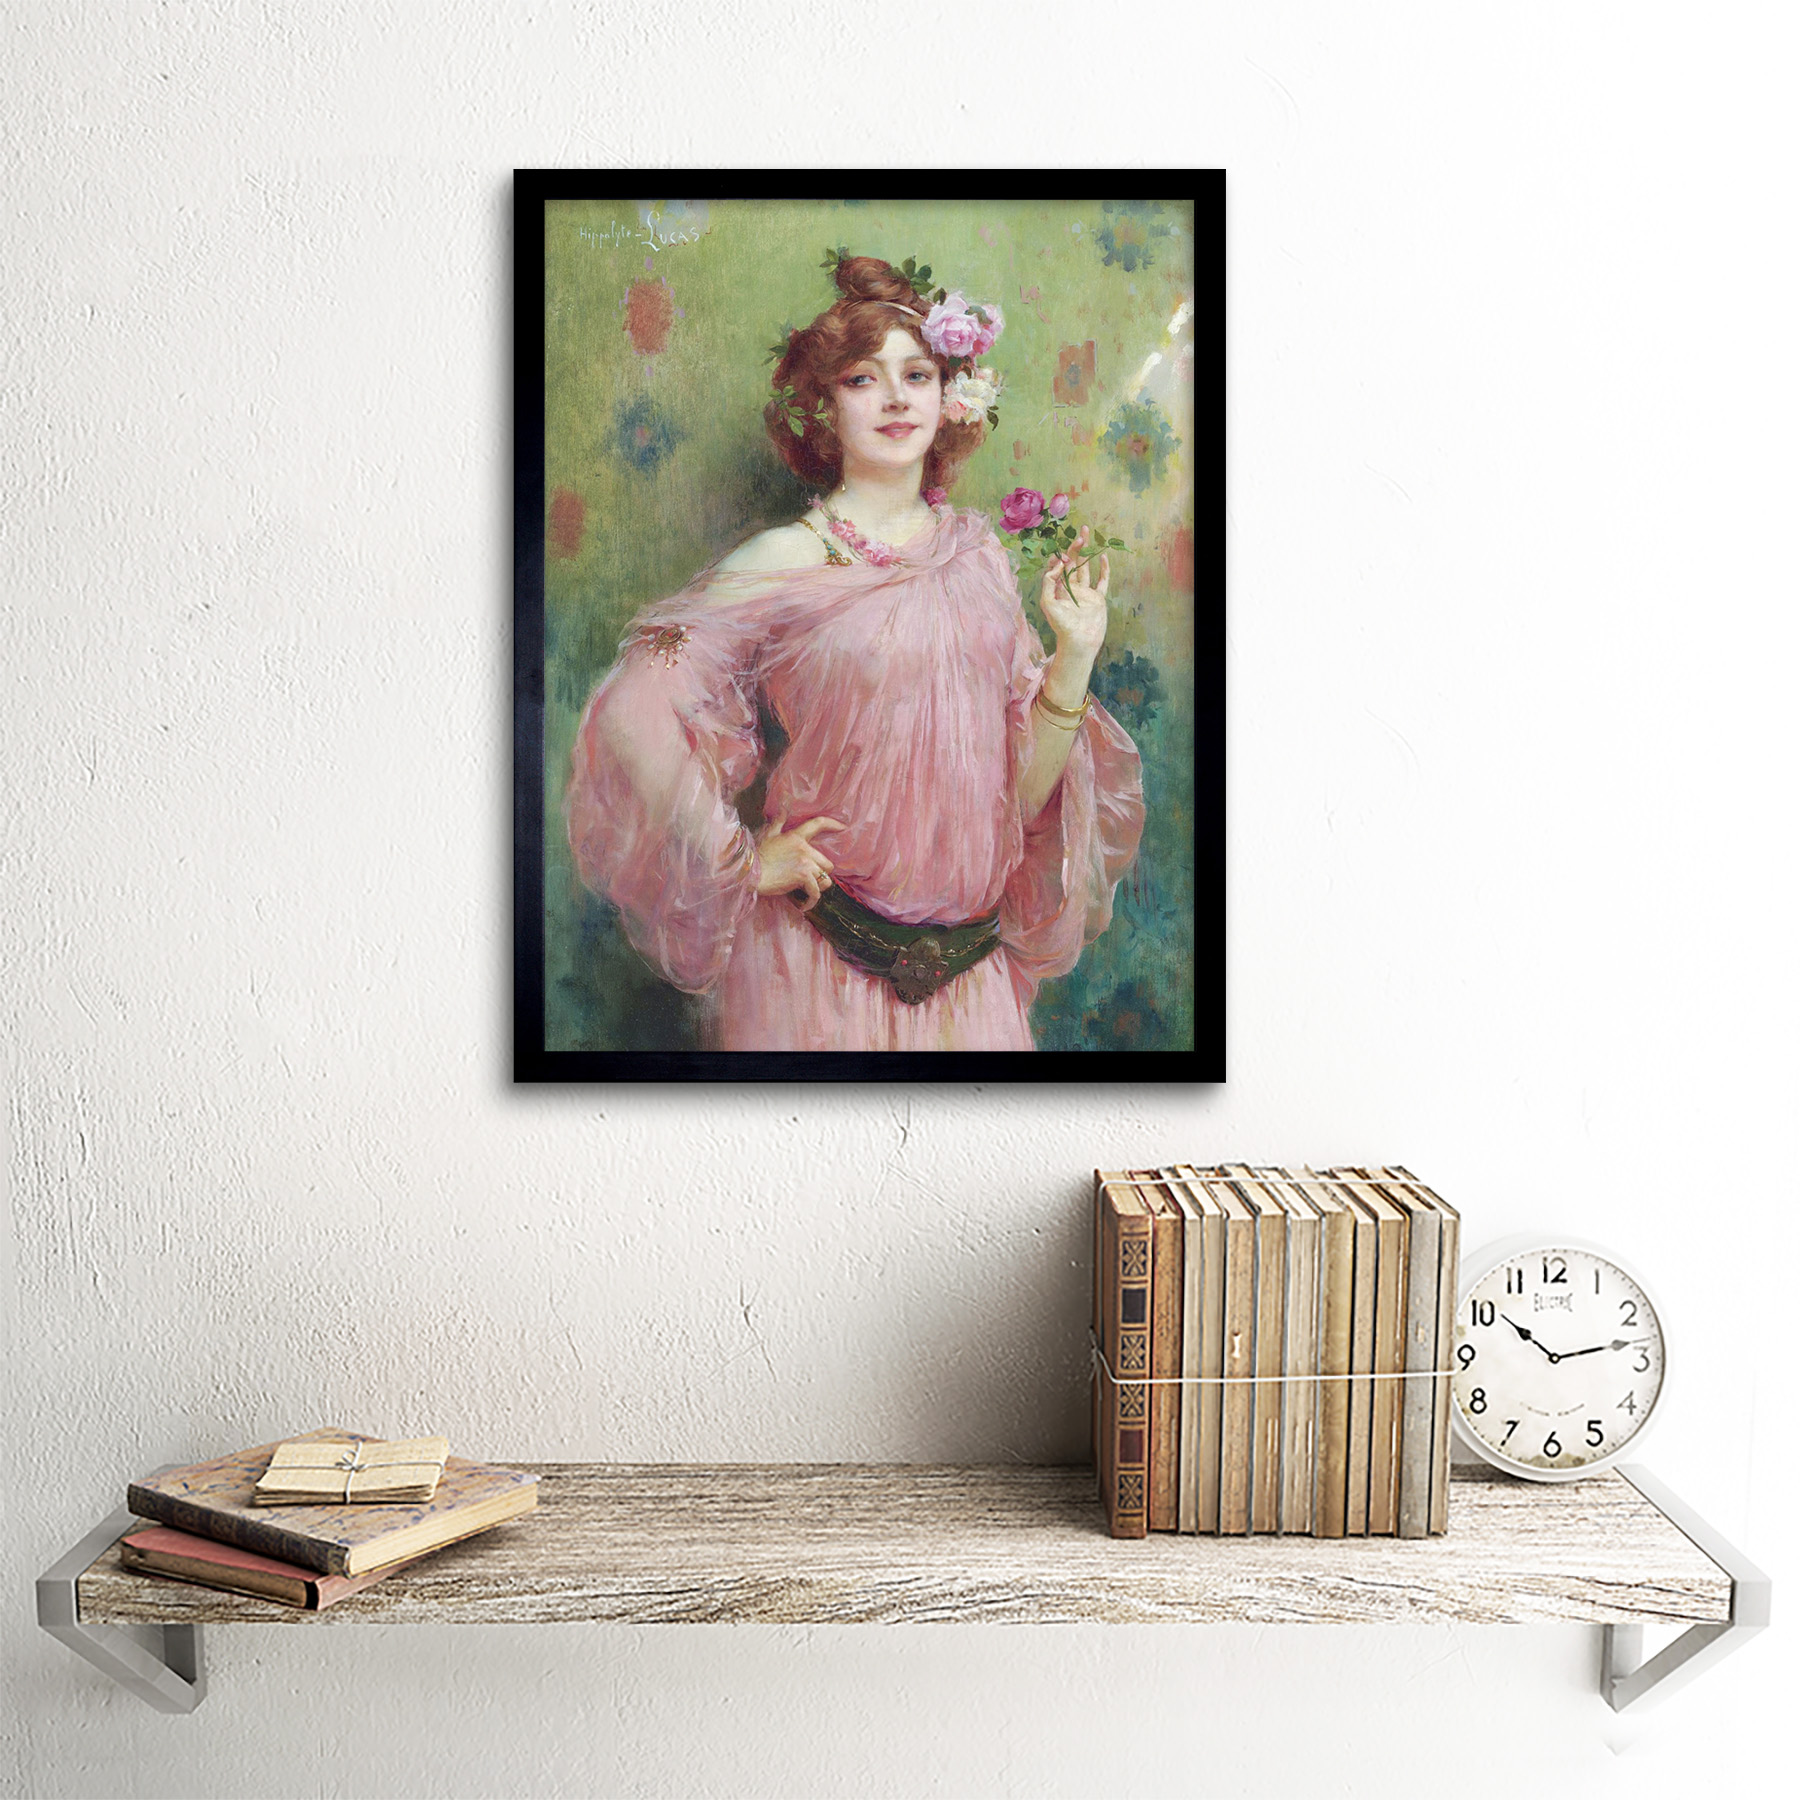 Hippolyte-Lucas-Beauty-In-Pink-Woman-Flowers-Painting-Art-Print-Framed-12x16 thumbnail 3